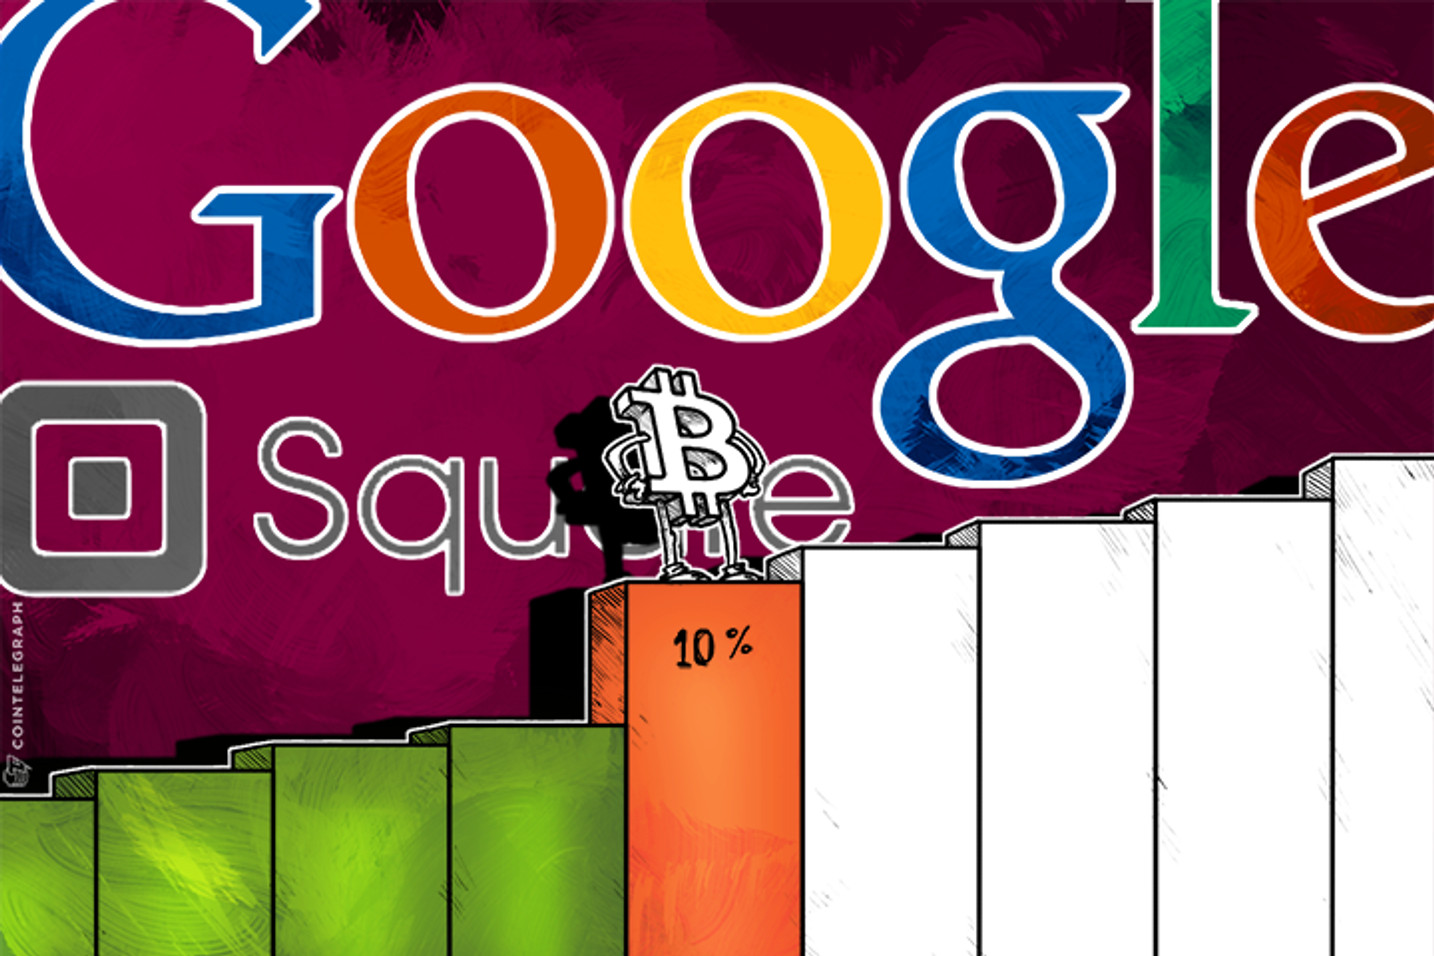 Bitcoin Price Rallies on Google and Square BTC Payment System News